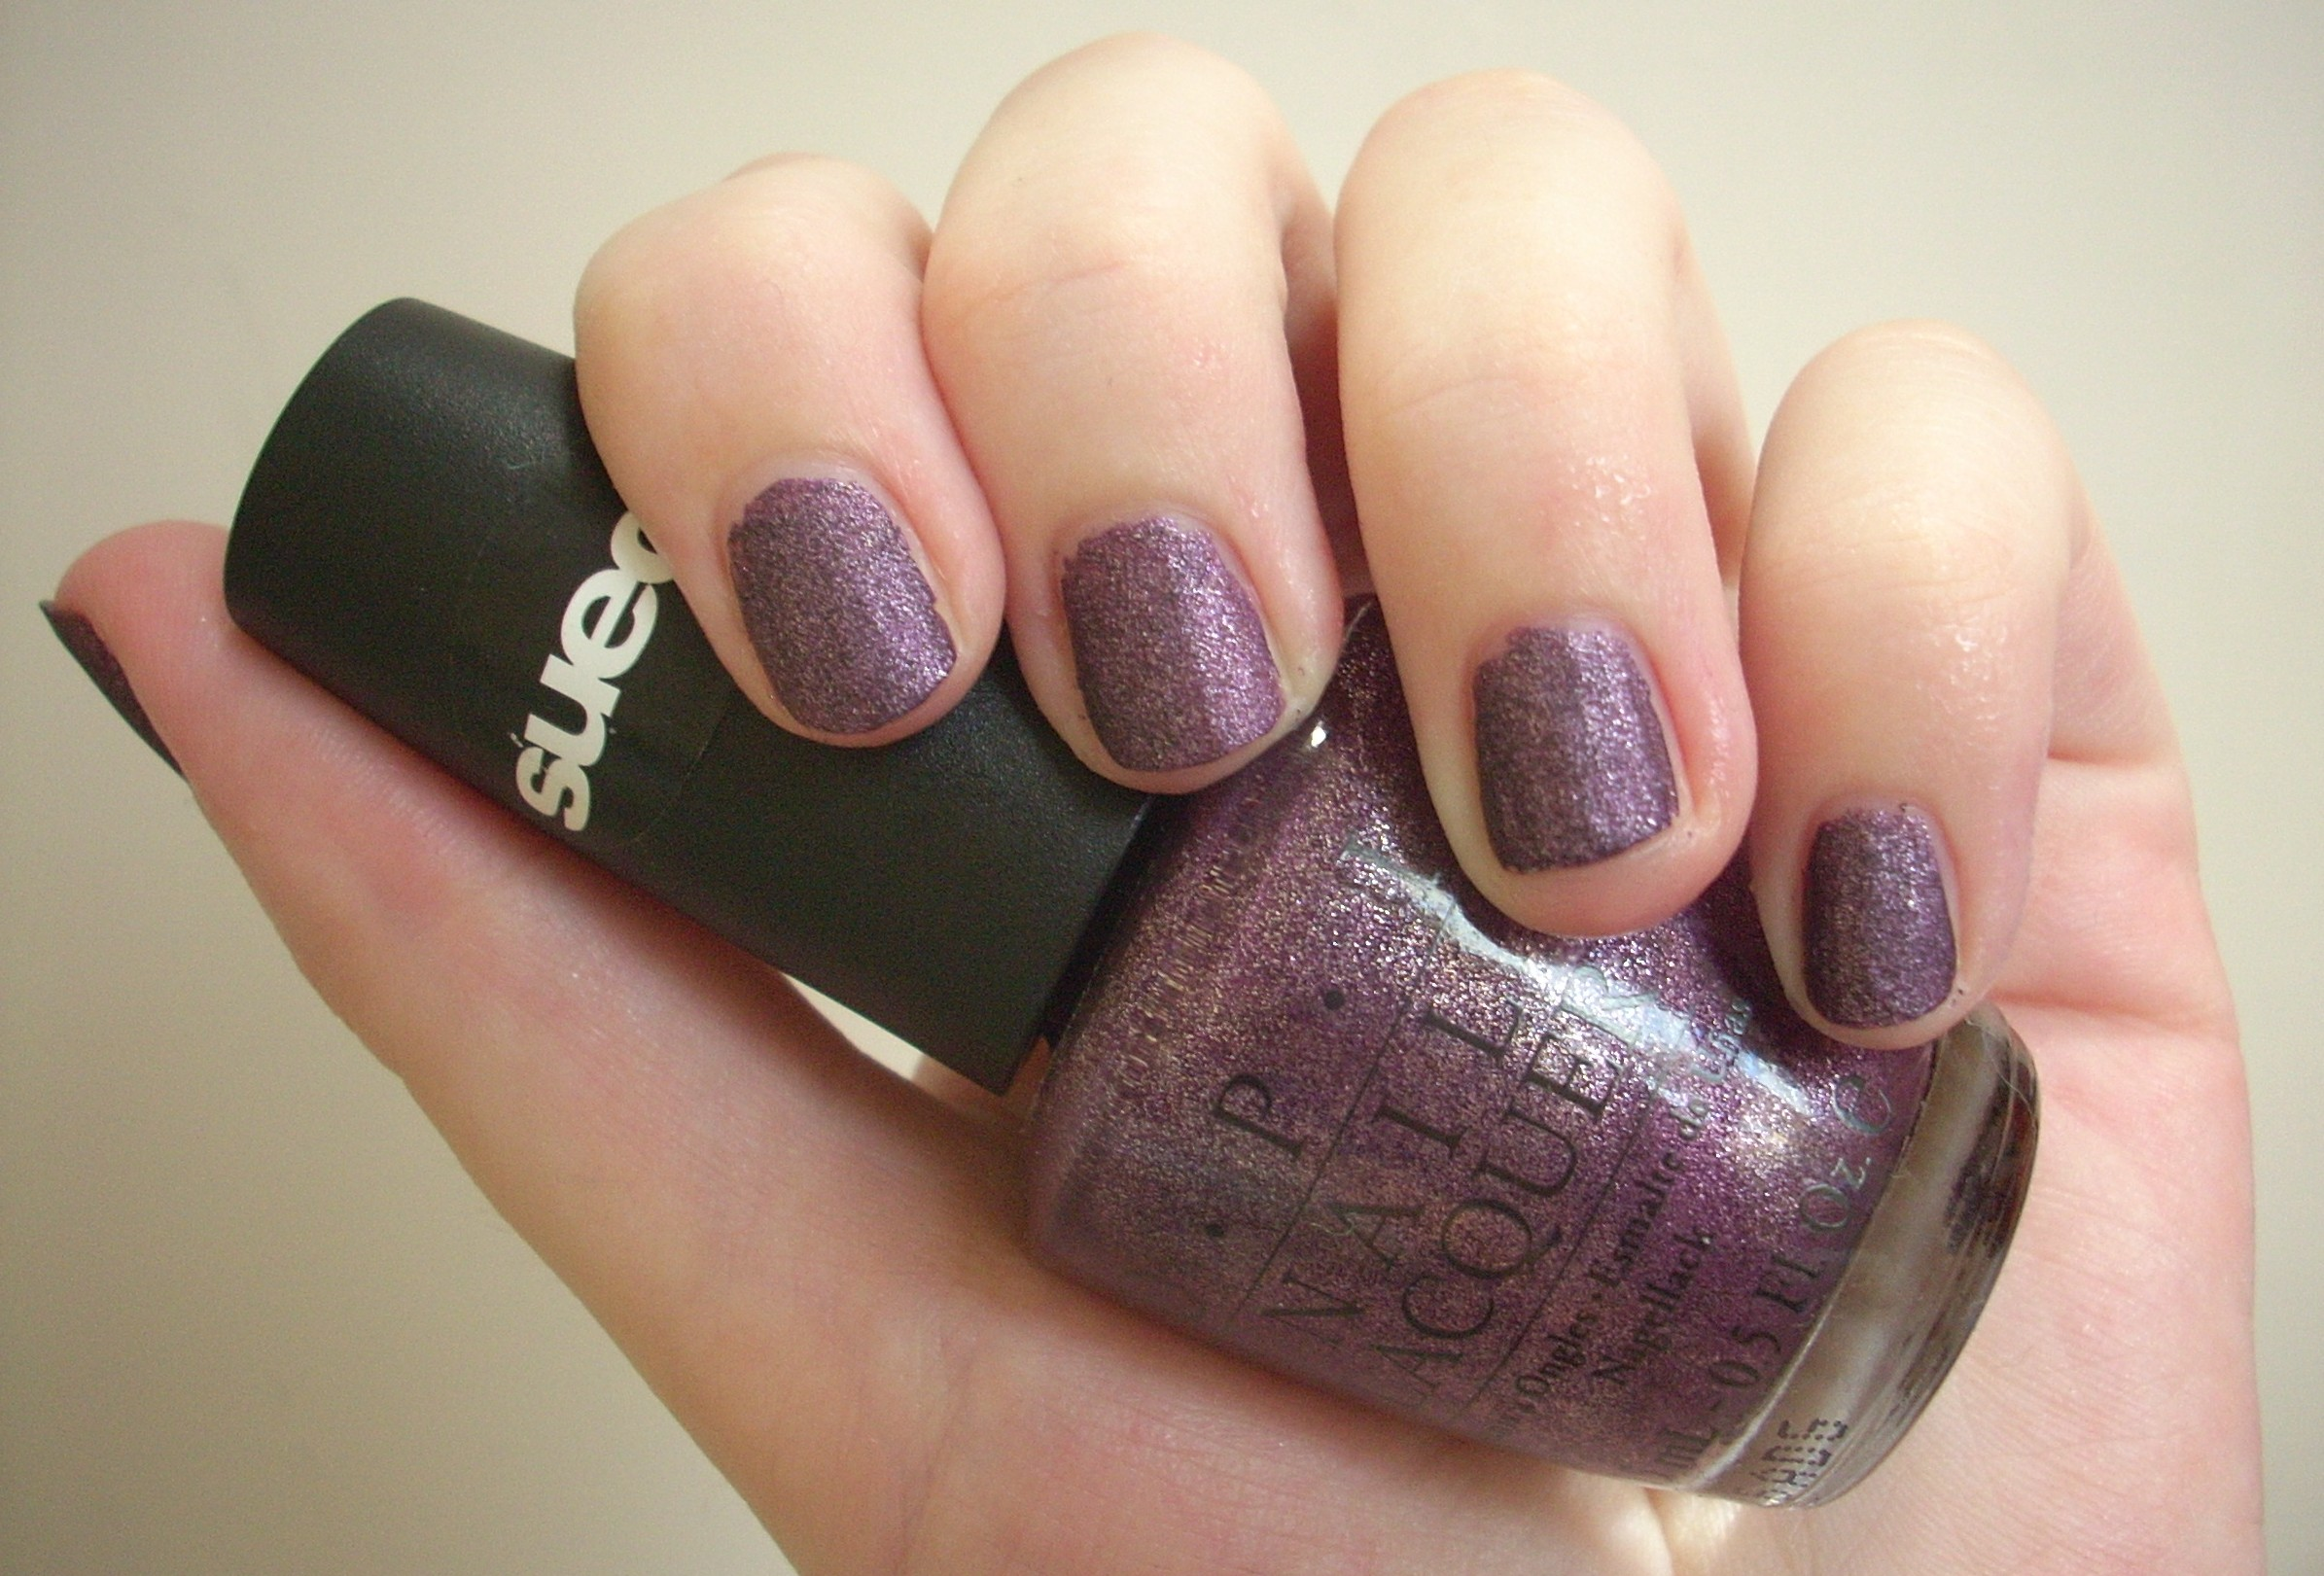 lincoln makeupalley reviews opi polishes dark after showreview photos itemid park product asp lpad